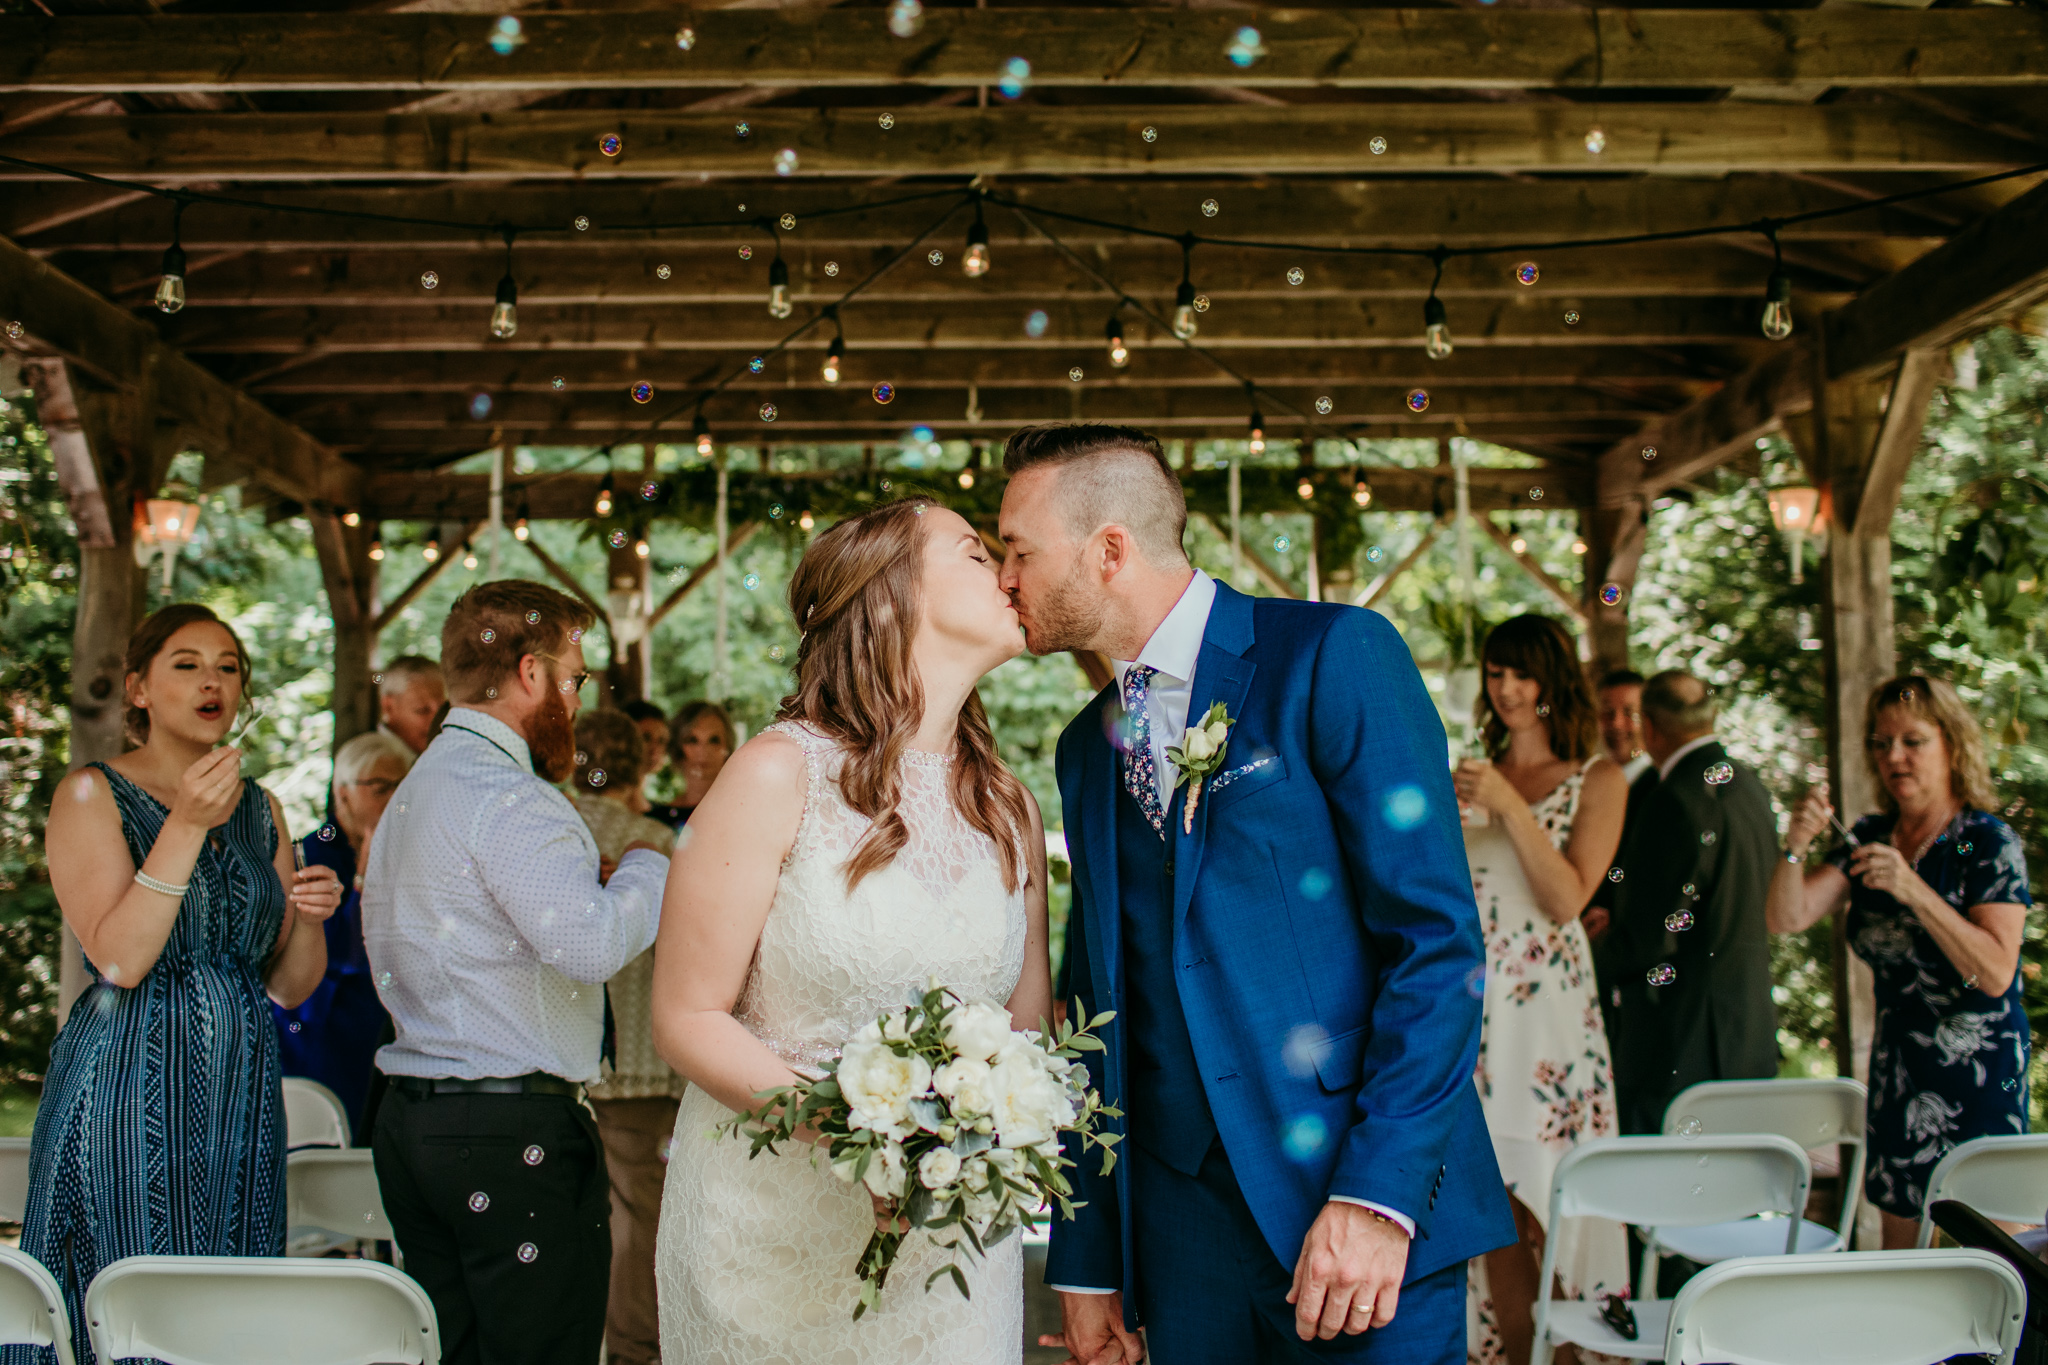 bride and groom sharing kiss after exit from reception with bubbles floating in the air